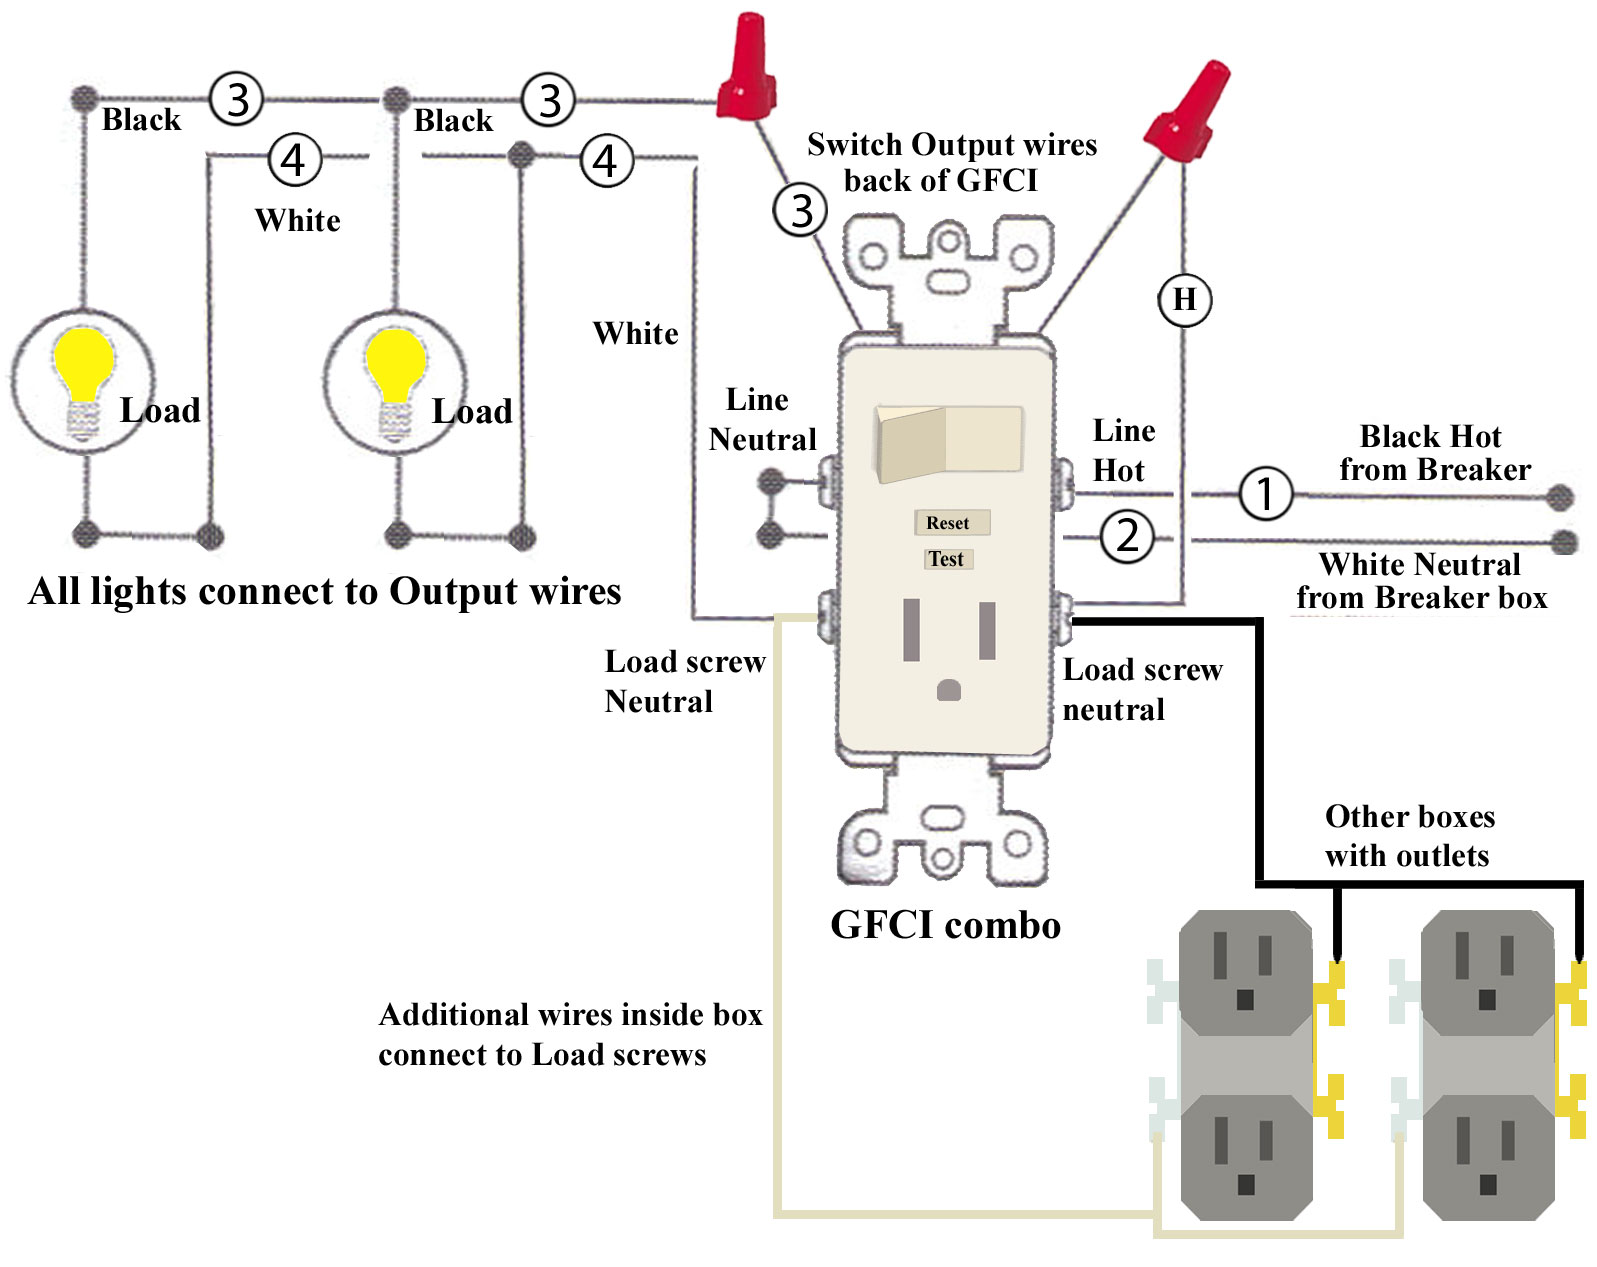 GFCI combo wiring3 update how to install and troubleshoot gfci leviton outlet wiring diagram at mifinder.co